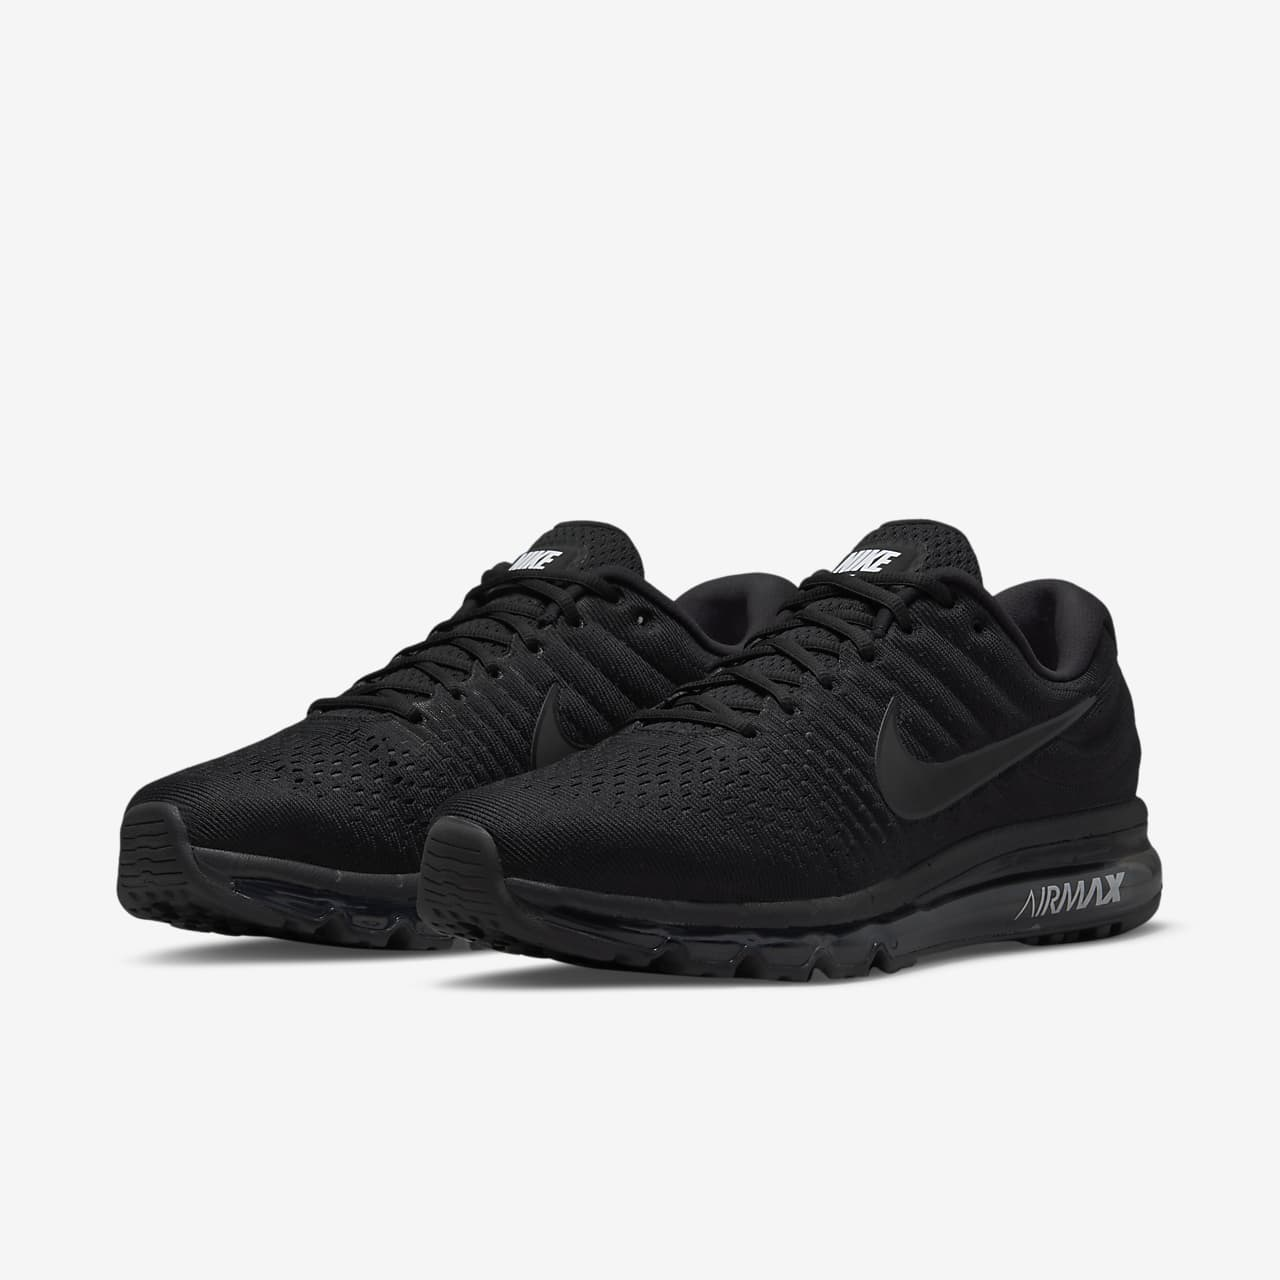 29df001ec278 Nike Air Max 2017 Men s Shoe. Nike.com AU